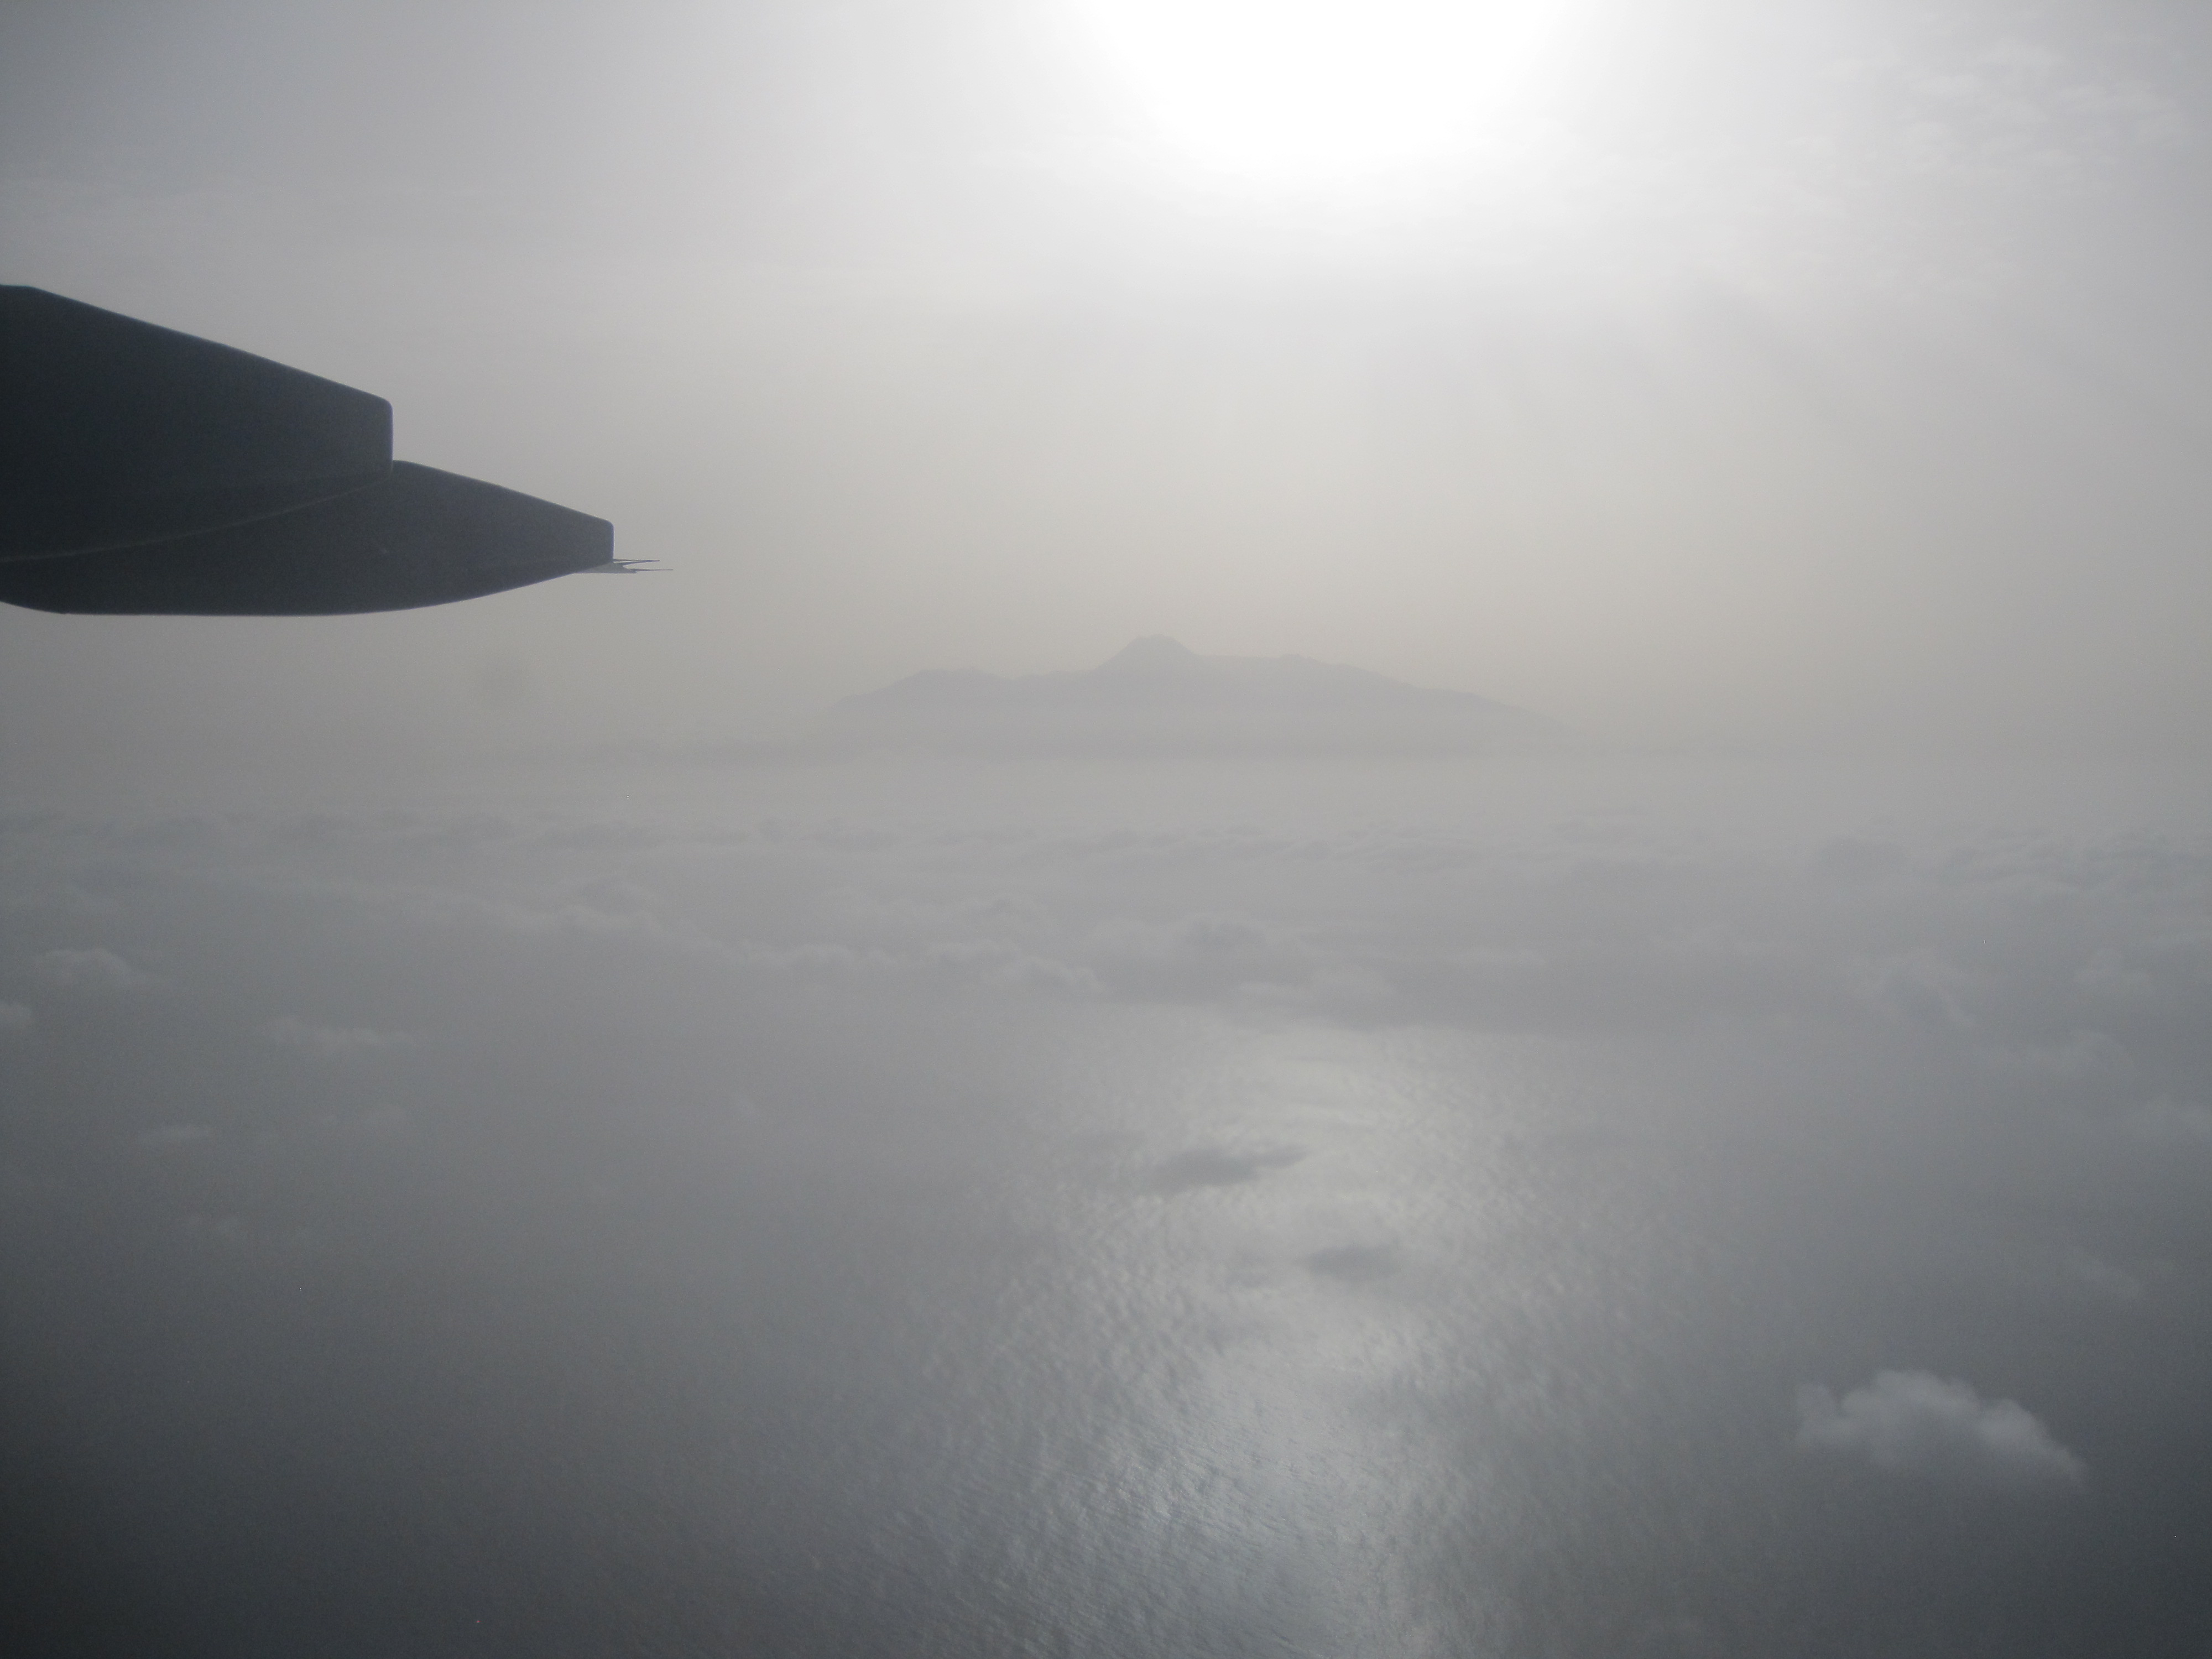 View of the Fogo Island from the flight, under the influence of a thick layer of dust - SAVEX-D Flight Campaign. Copyright Victor Estelles.